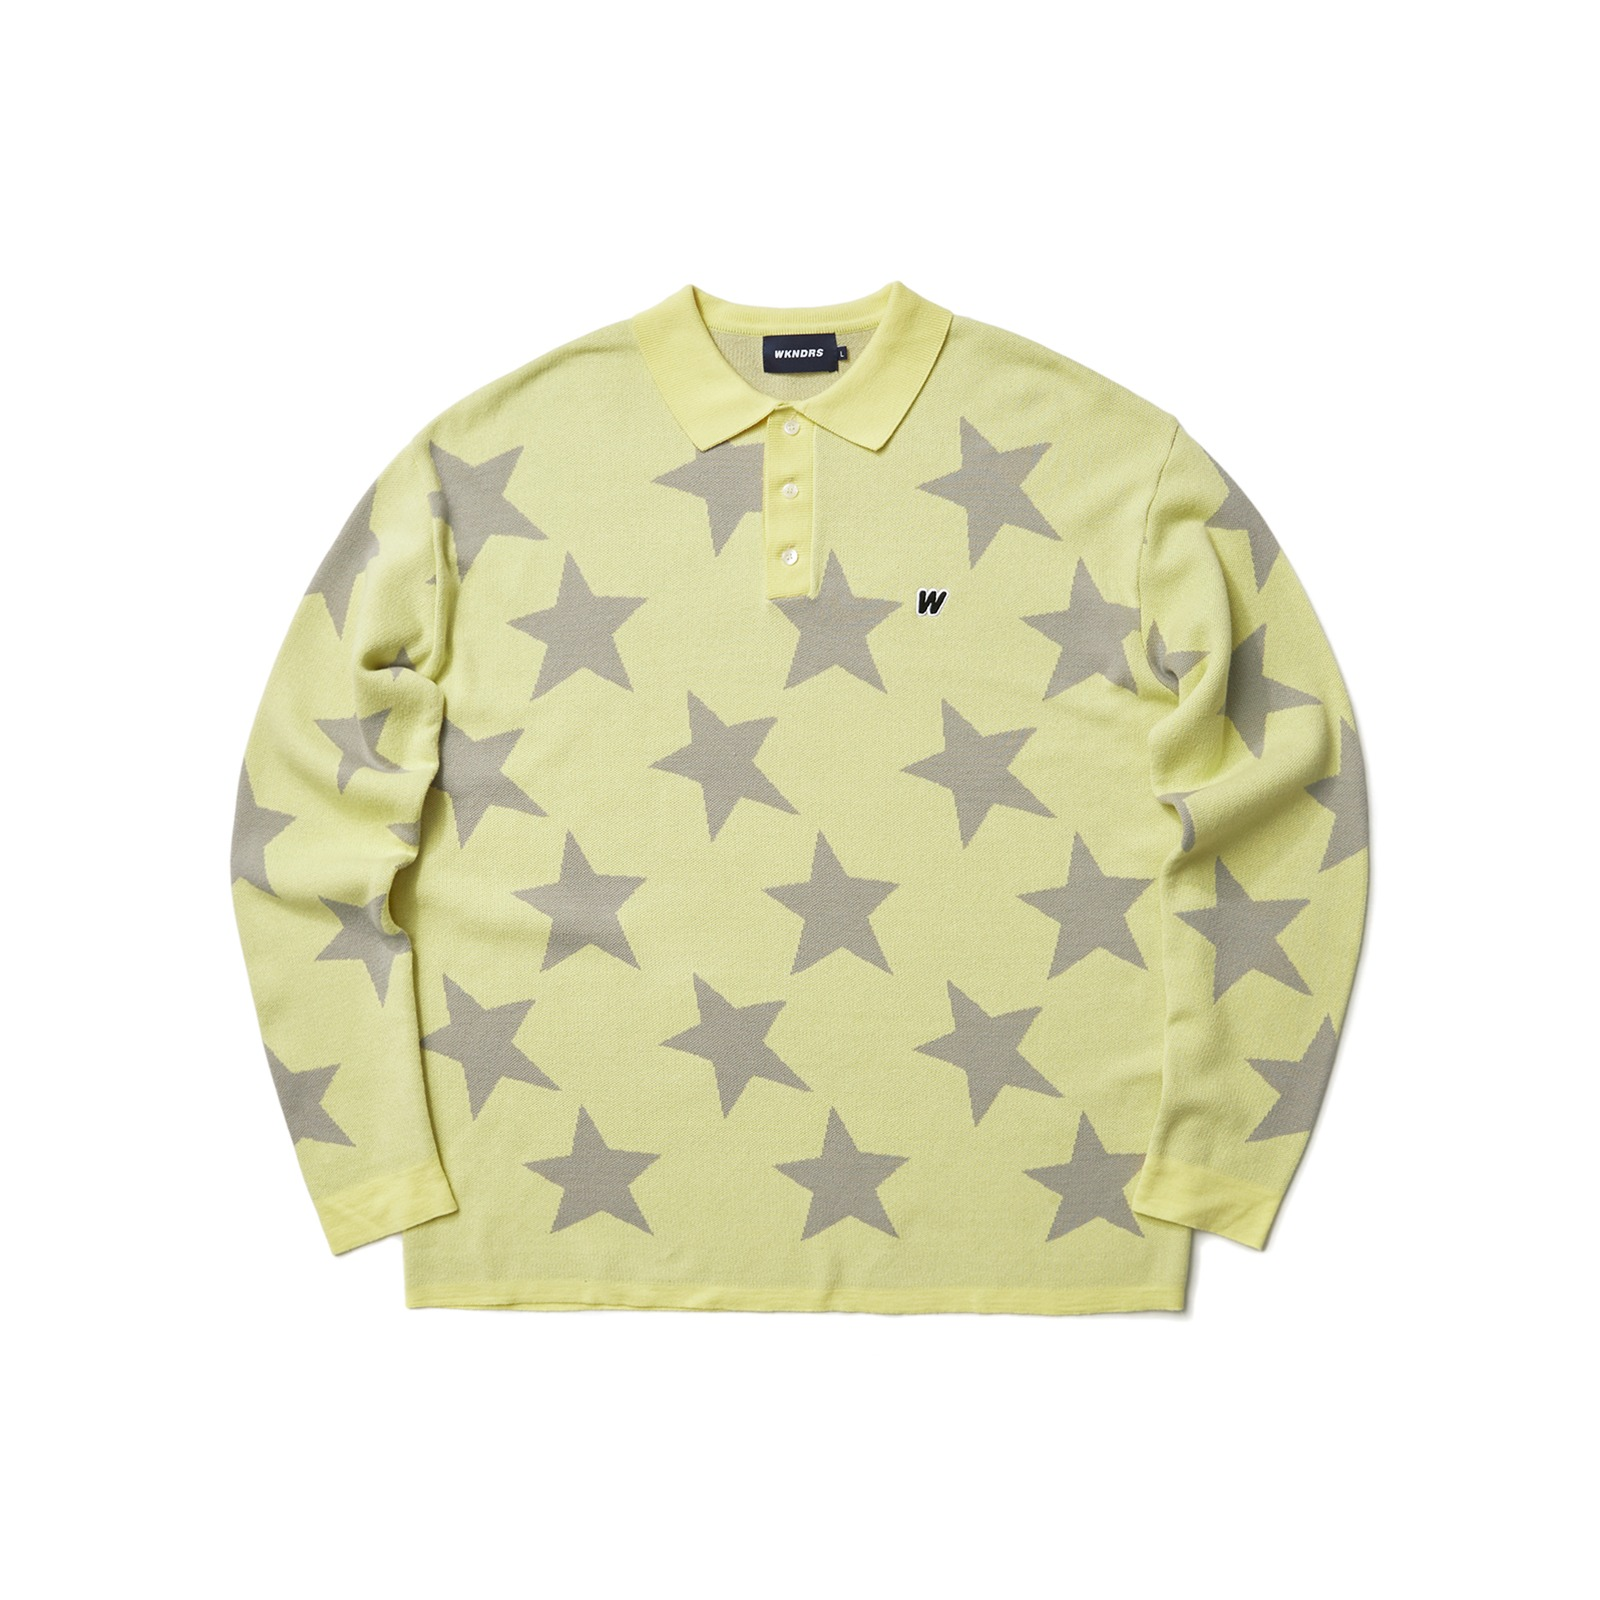 KNITTED STAR POLO SHIRT (YELLOW)